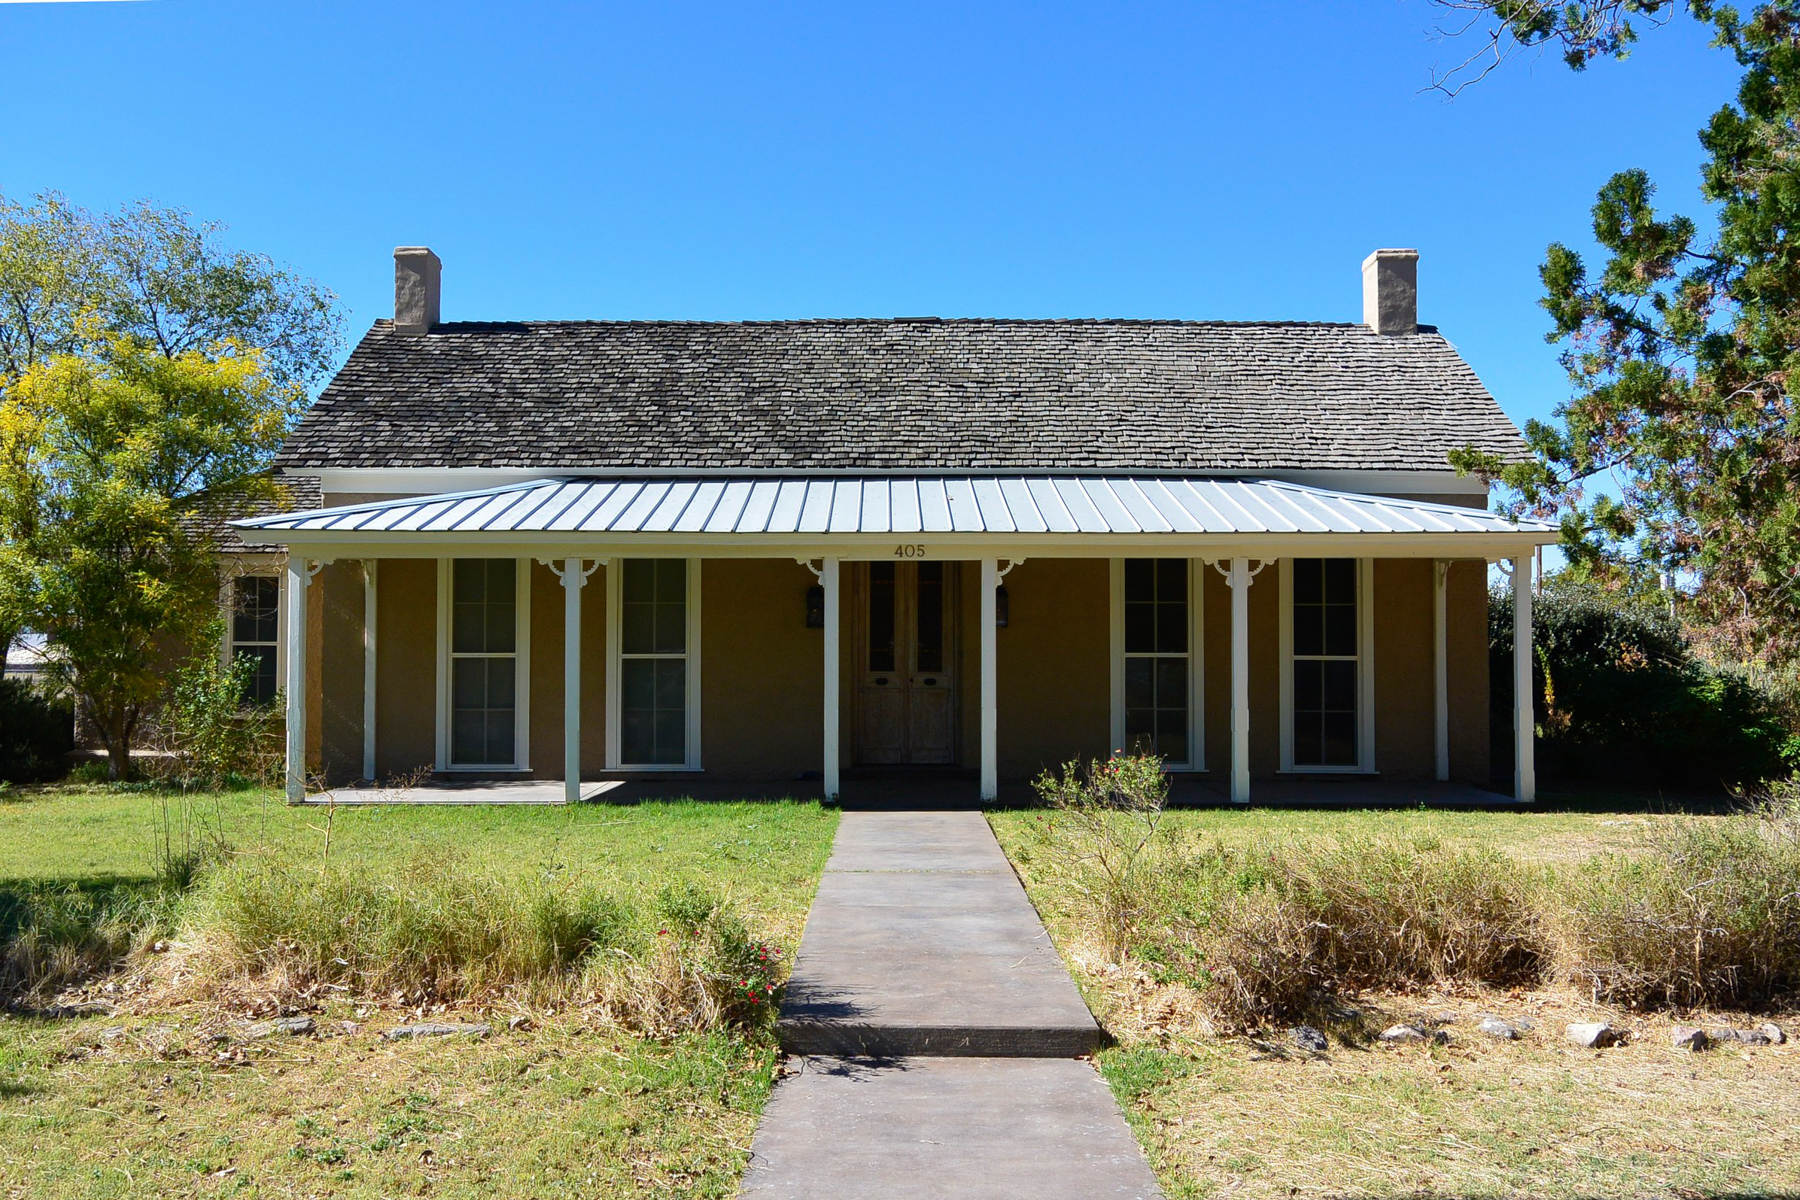 Single Family Home for Sale at Exquisite Property in Marfa 405 N Austin St Marfa, Texas 79843 United States